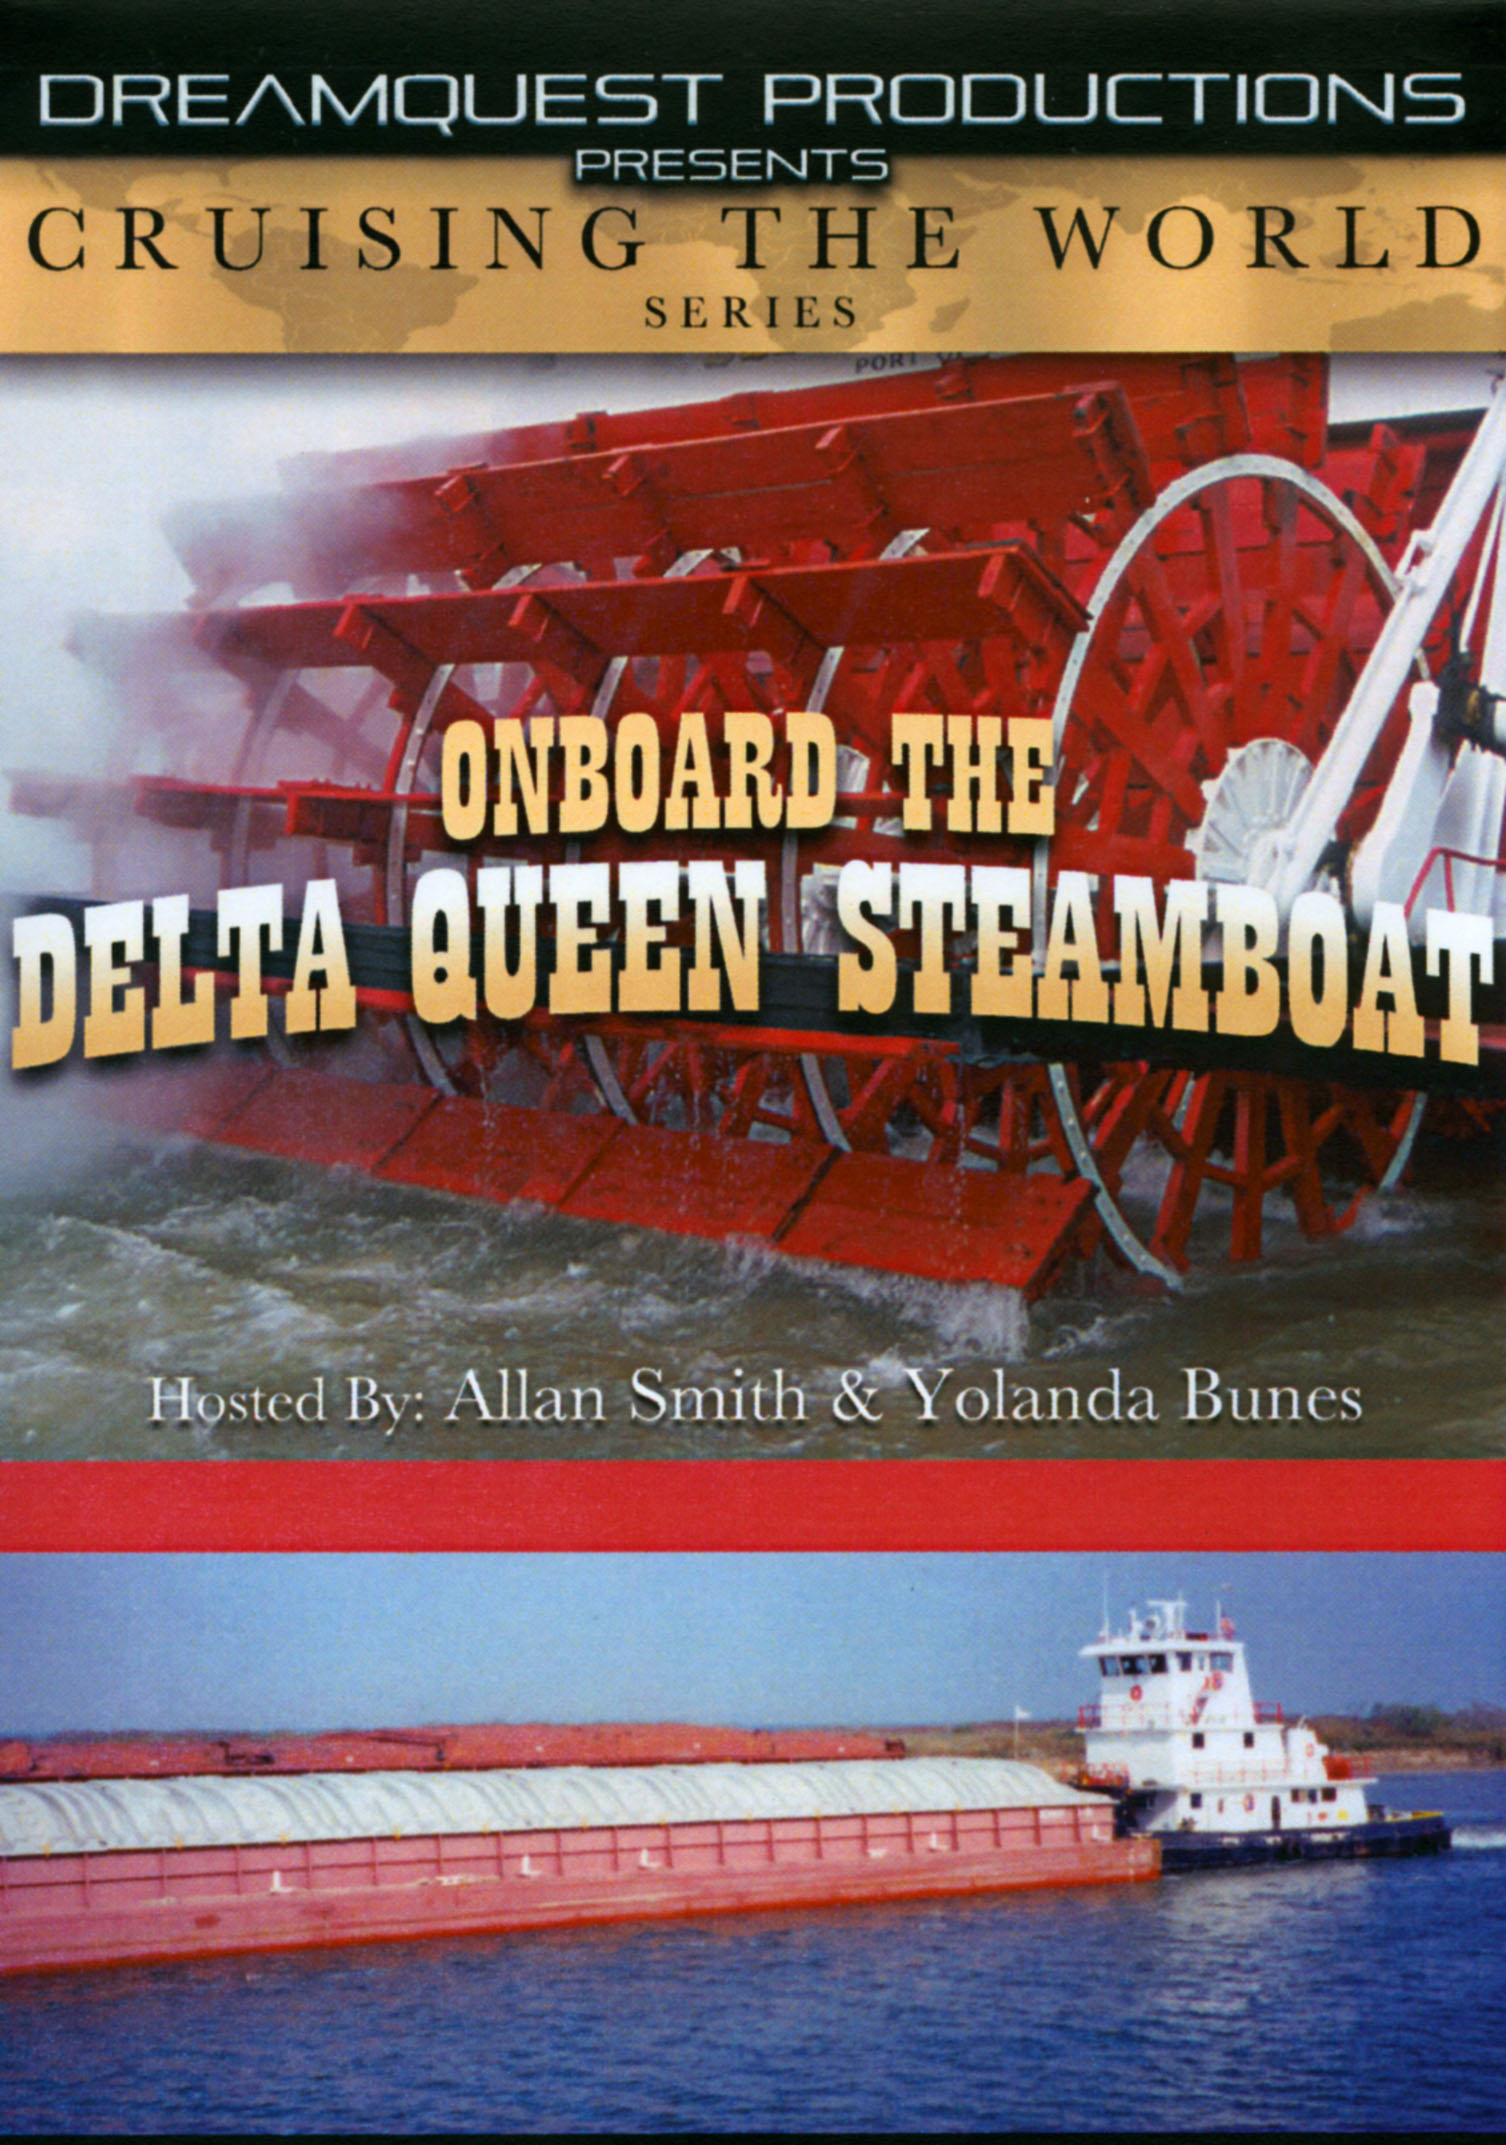 Cruising The World: Onboard the Delta Queen Steamboat